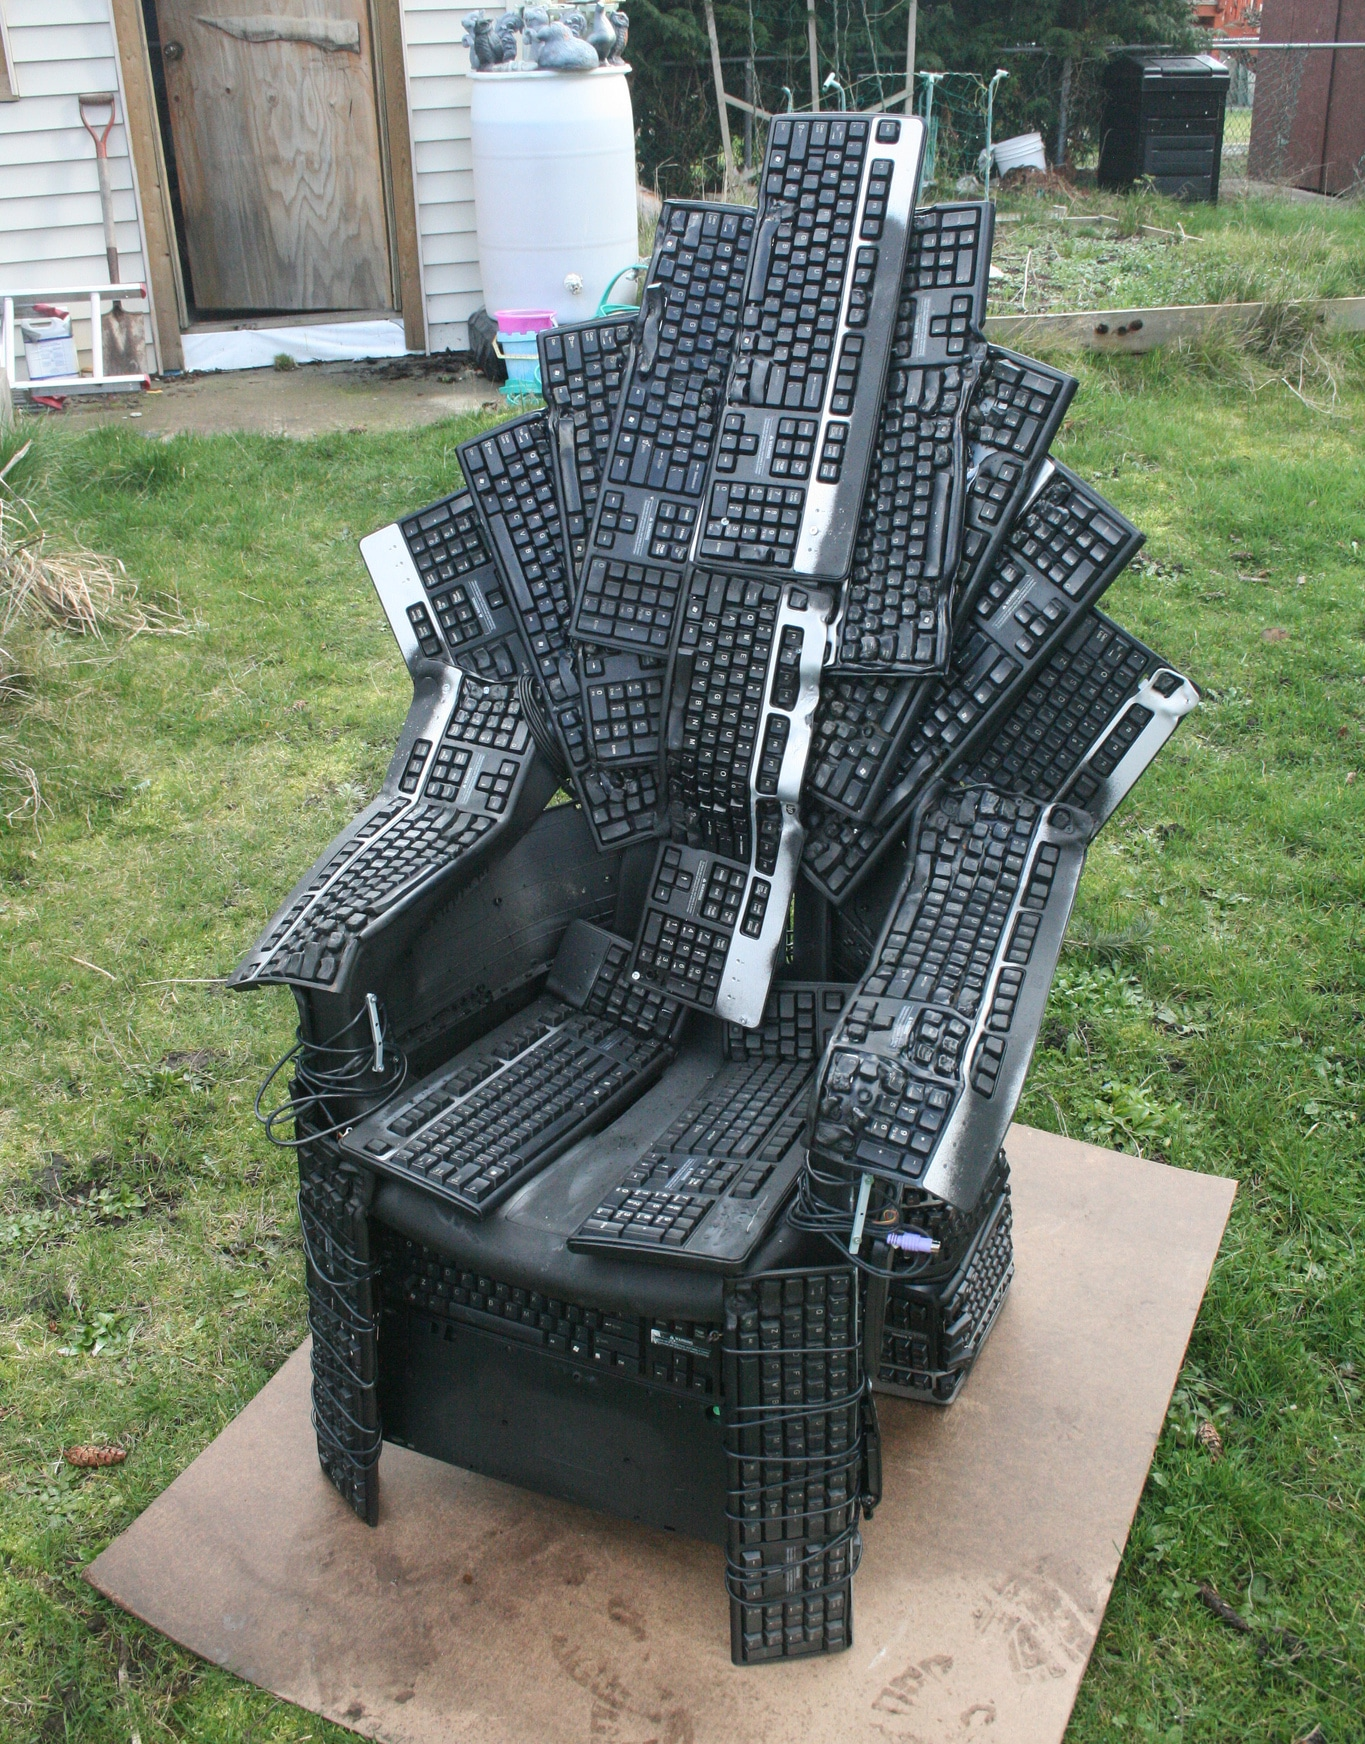 game-of-thrones-computer-keyboards